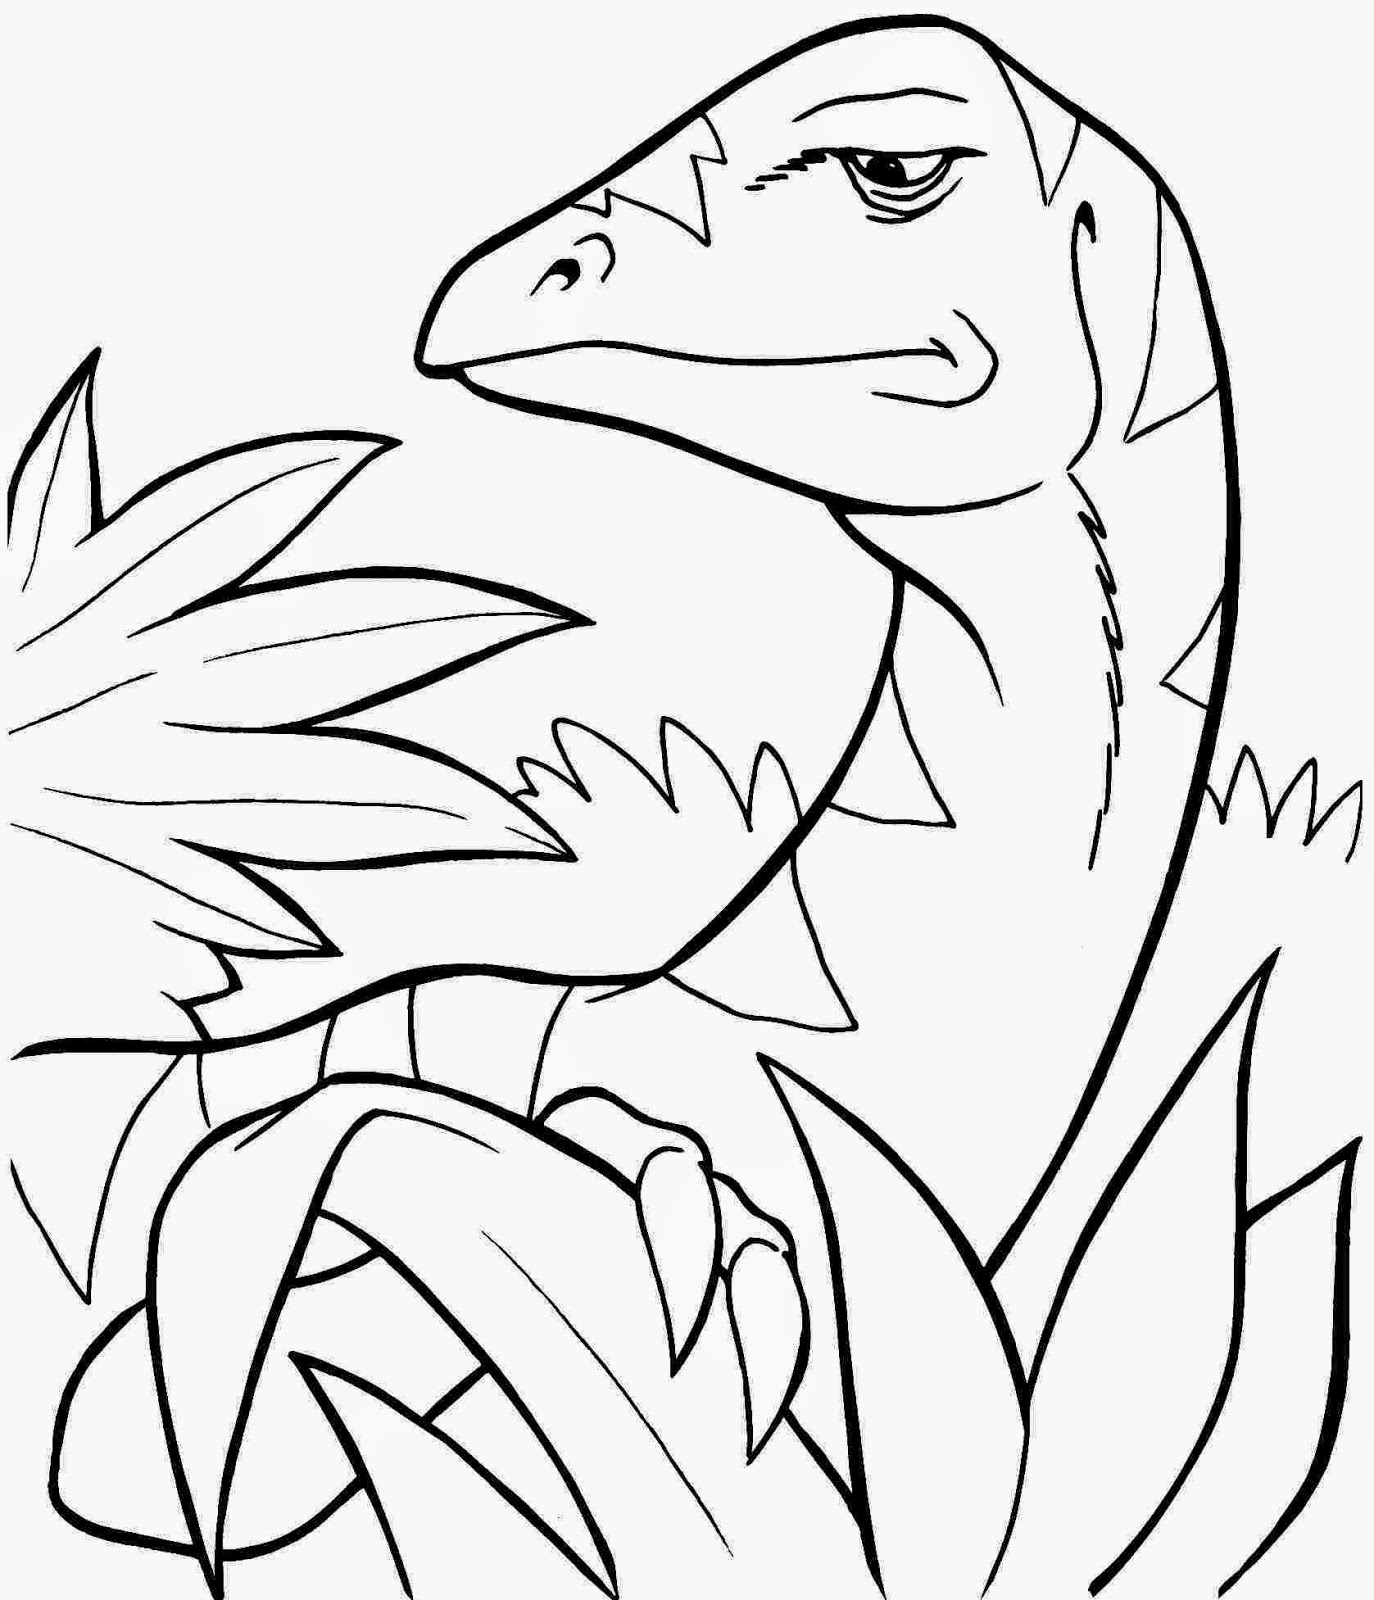 free printable dinosaur coloring pages free printable dinosaur coloring pages for kids printable free coloring dinosaur pages